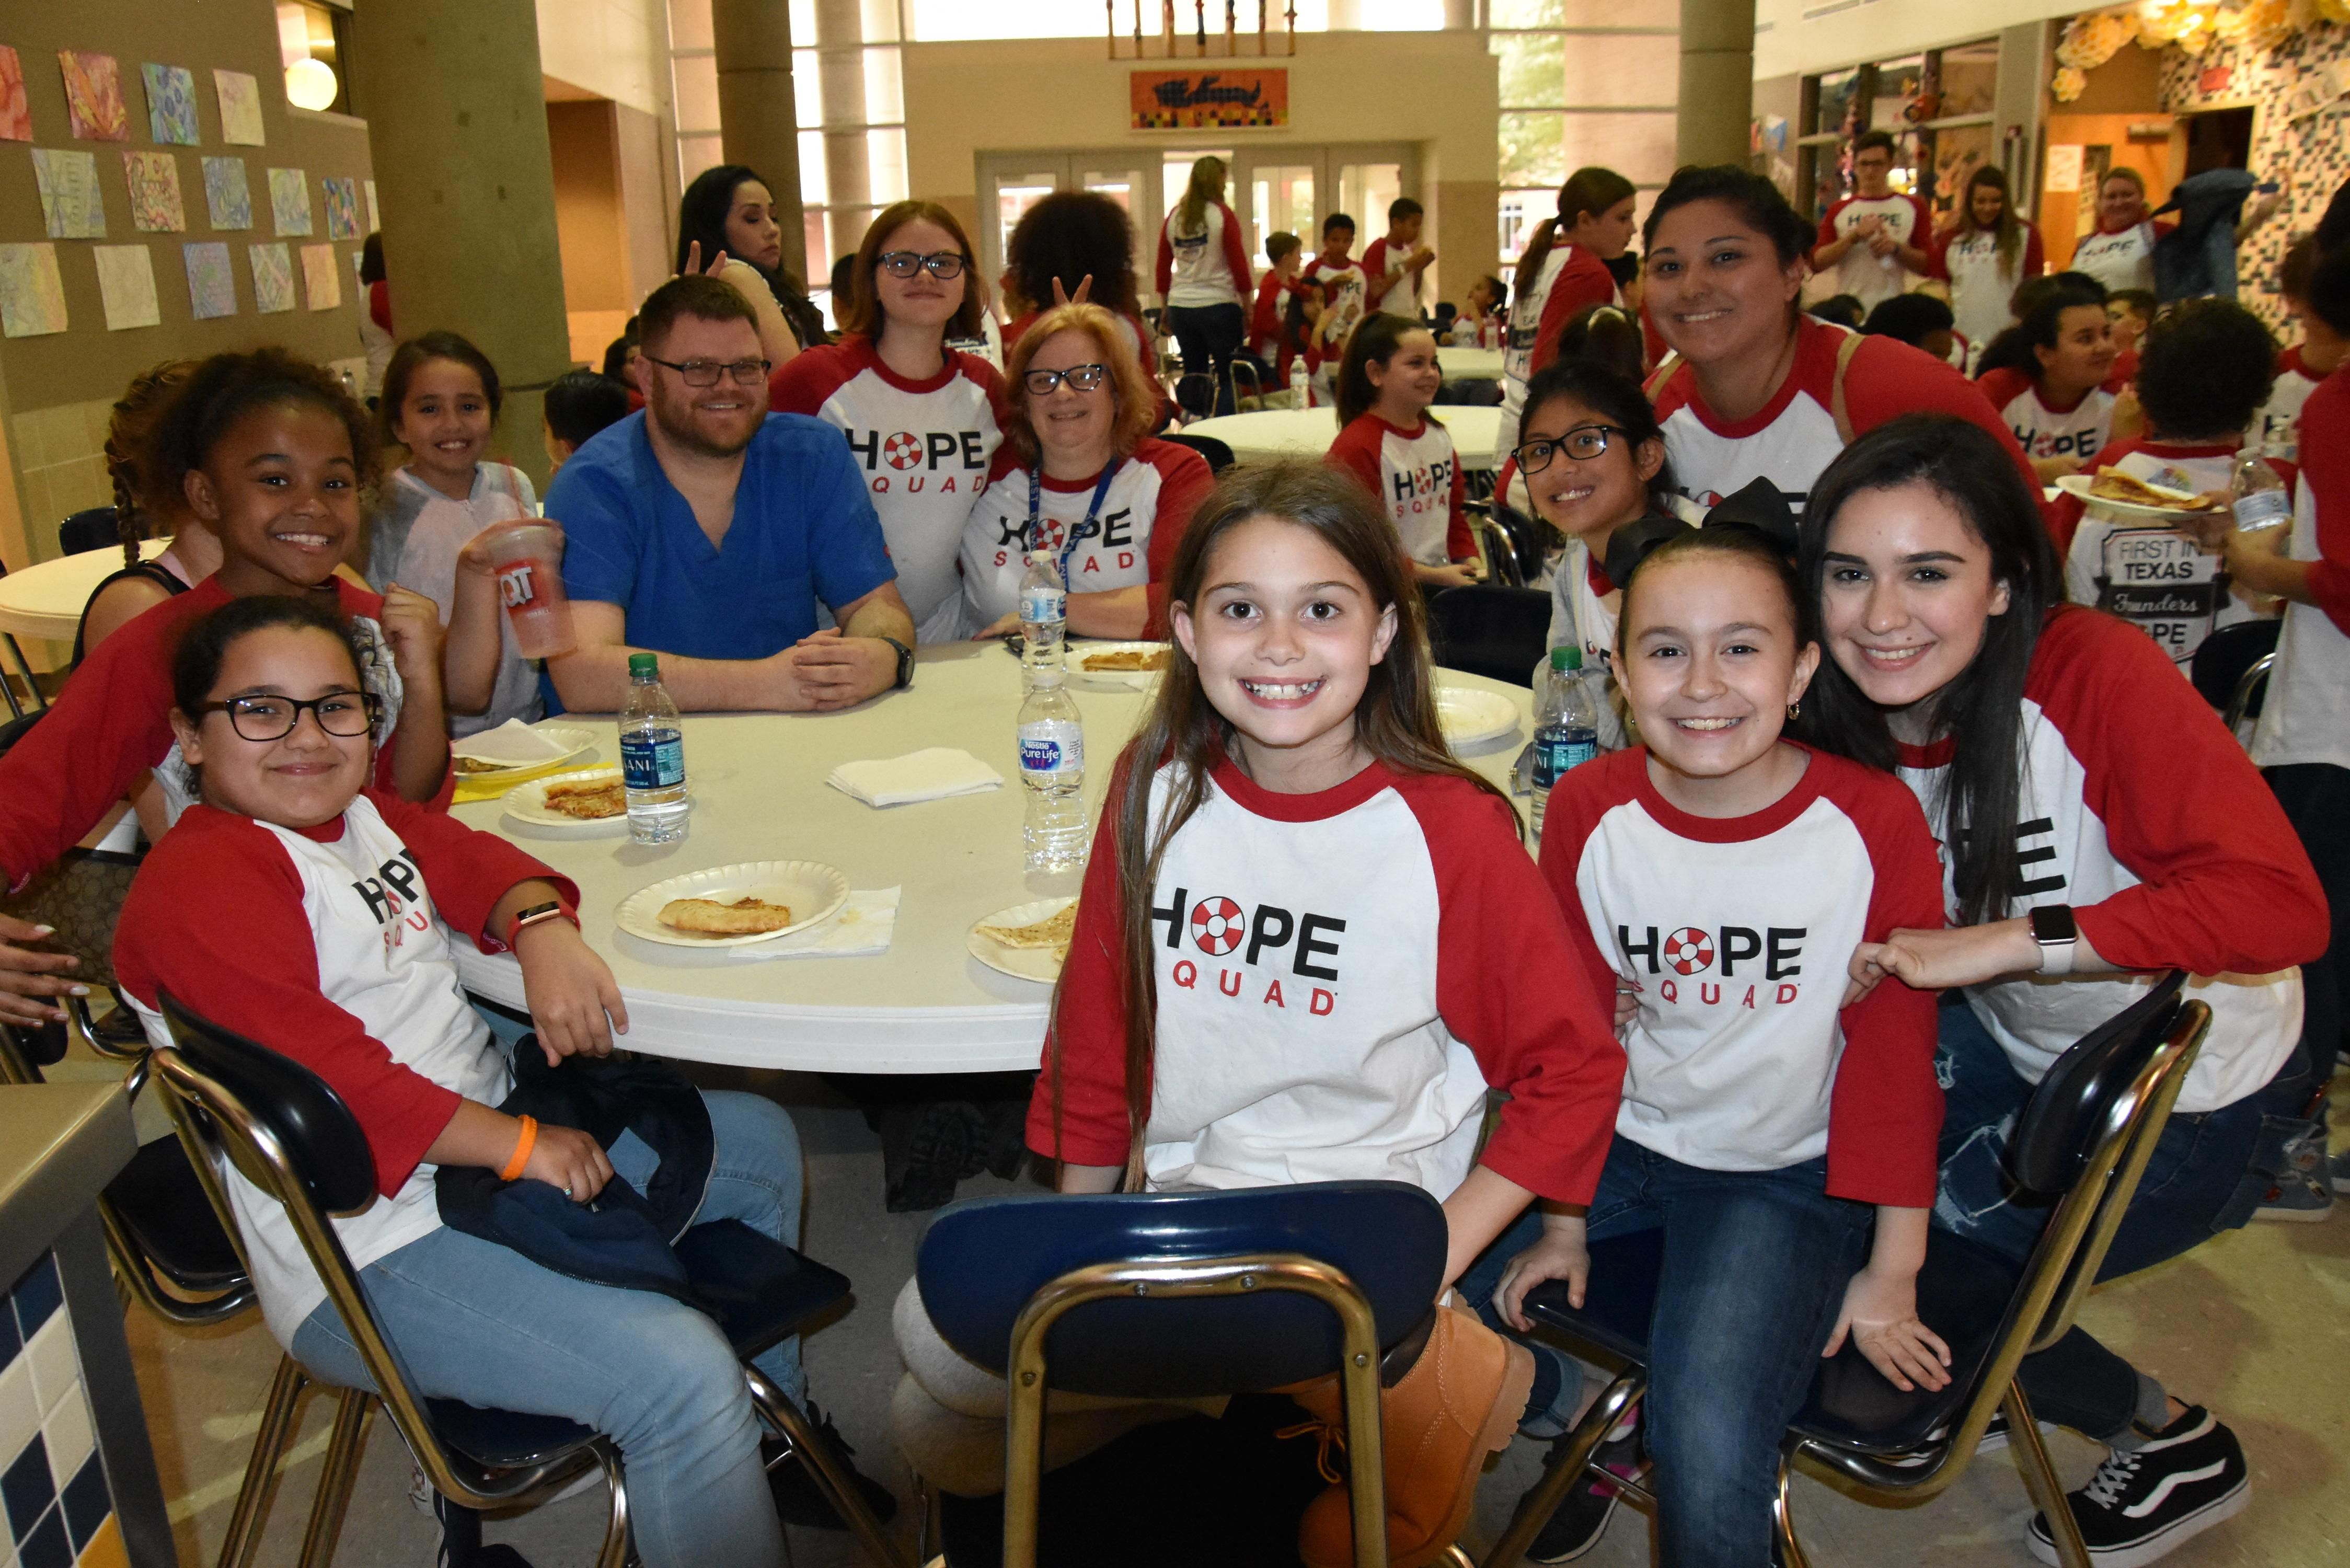 WSISD HOPE Squad members in grades four through 12 kicked off Hope Week with a team building event that included games, cheers and an opportunity to get to know one another before the district-wide HOPE Rally on Feb. 4.